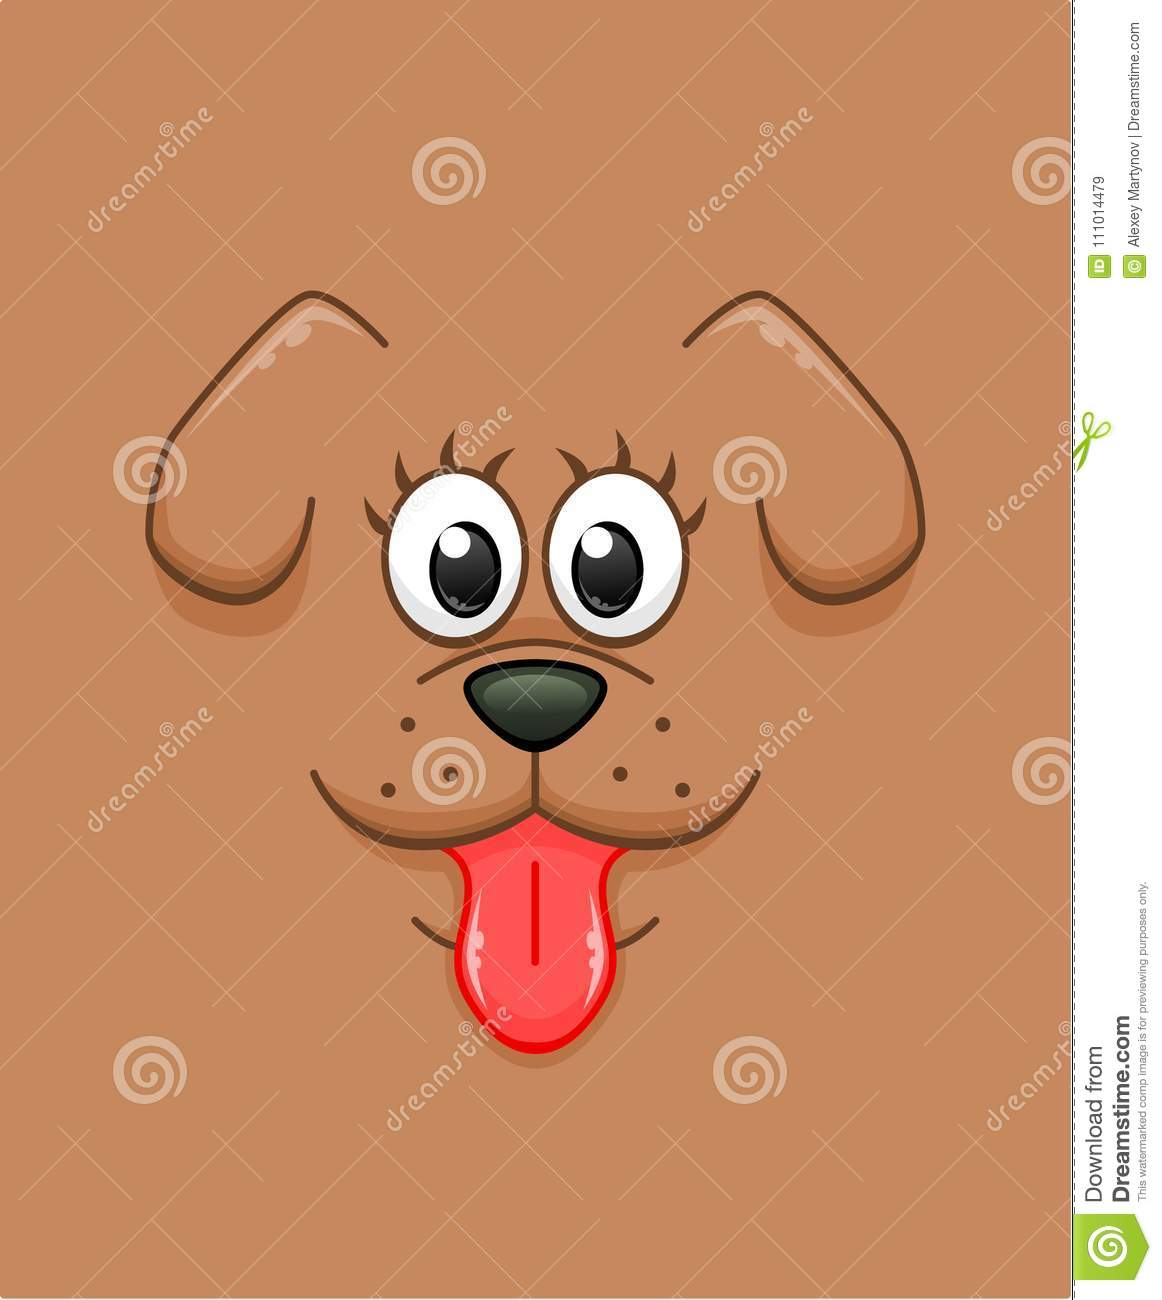 Cartoon Dog Face Background Stock Vector Illustration Of Domestic Funny 111014479